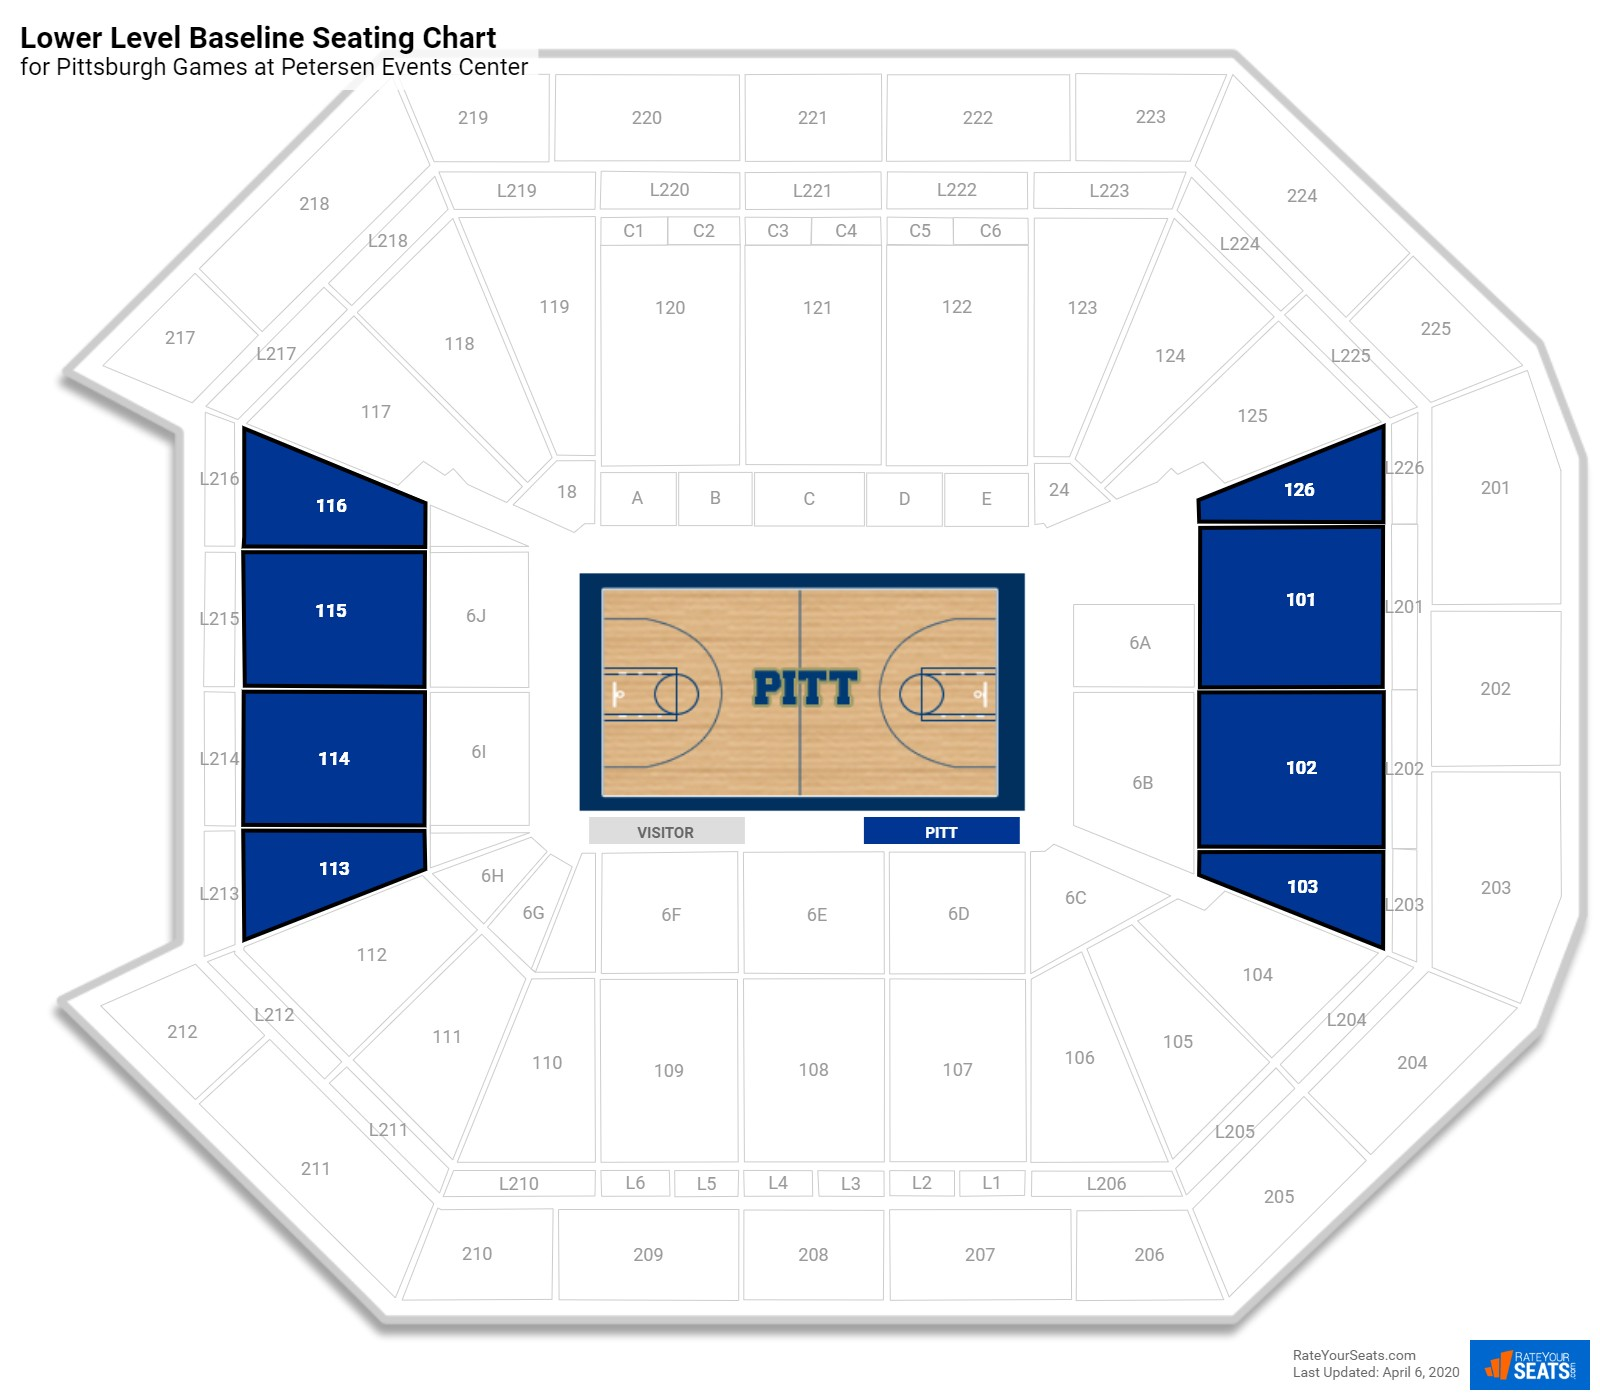 Petersen Events Center Lower Level Baseline Seating Chart